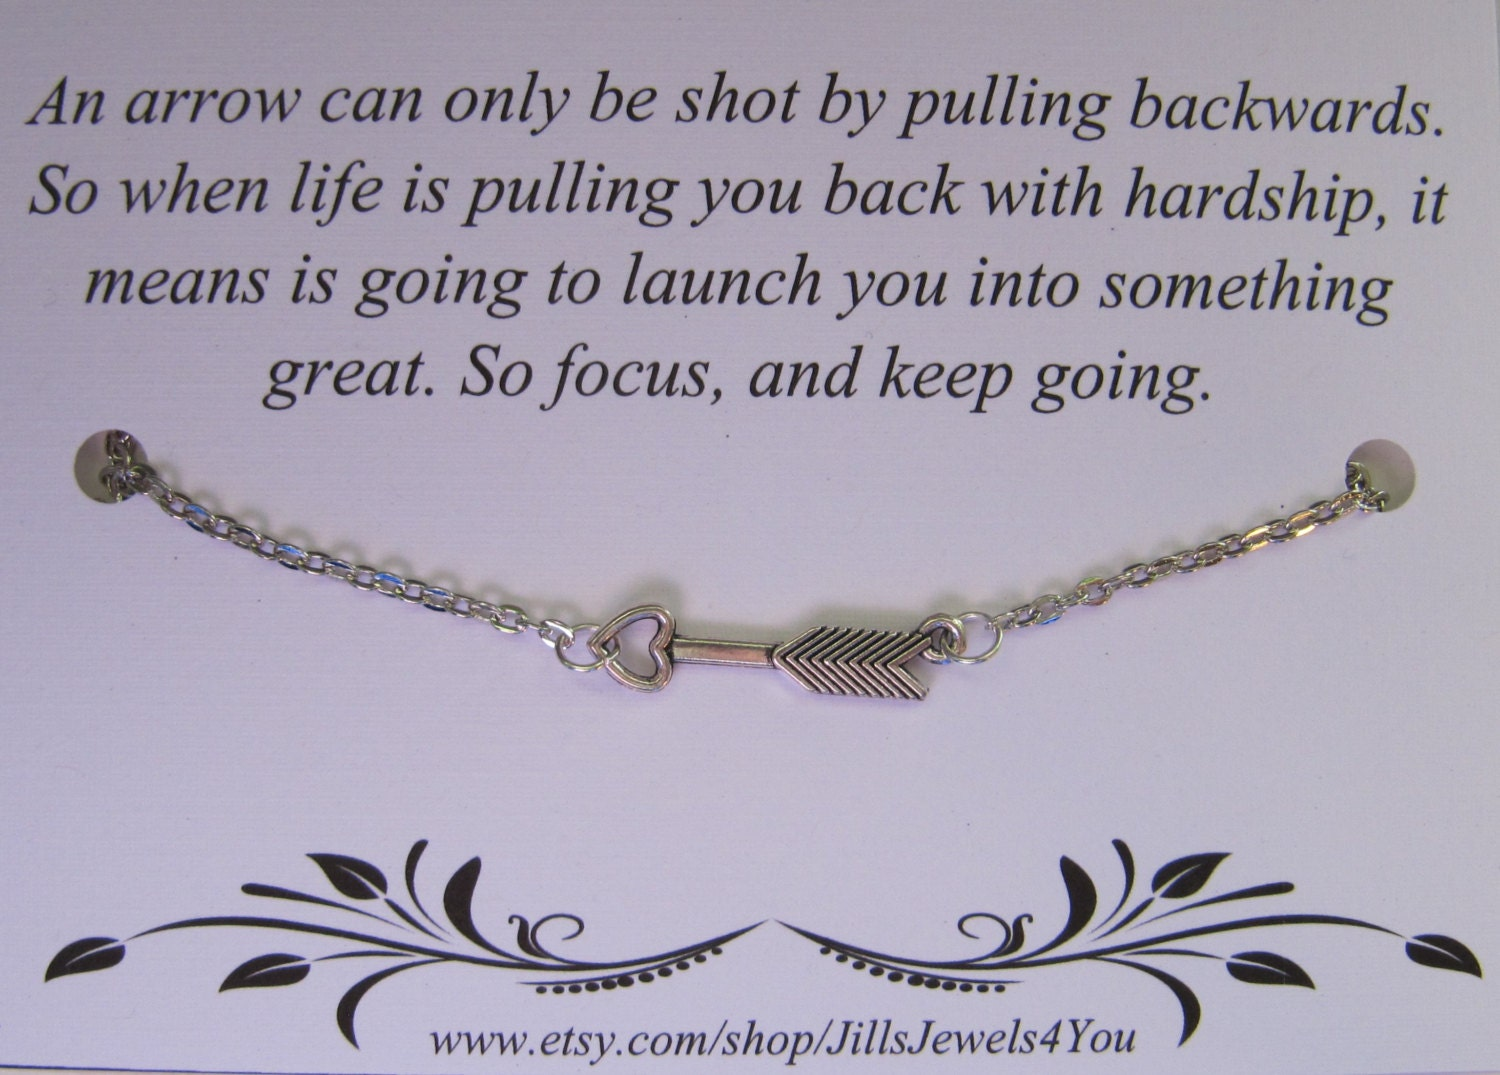 Quotes About Pearls And Friendship Arrow Necklace With Heart And Inspiratonal Quote Follow Your